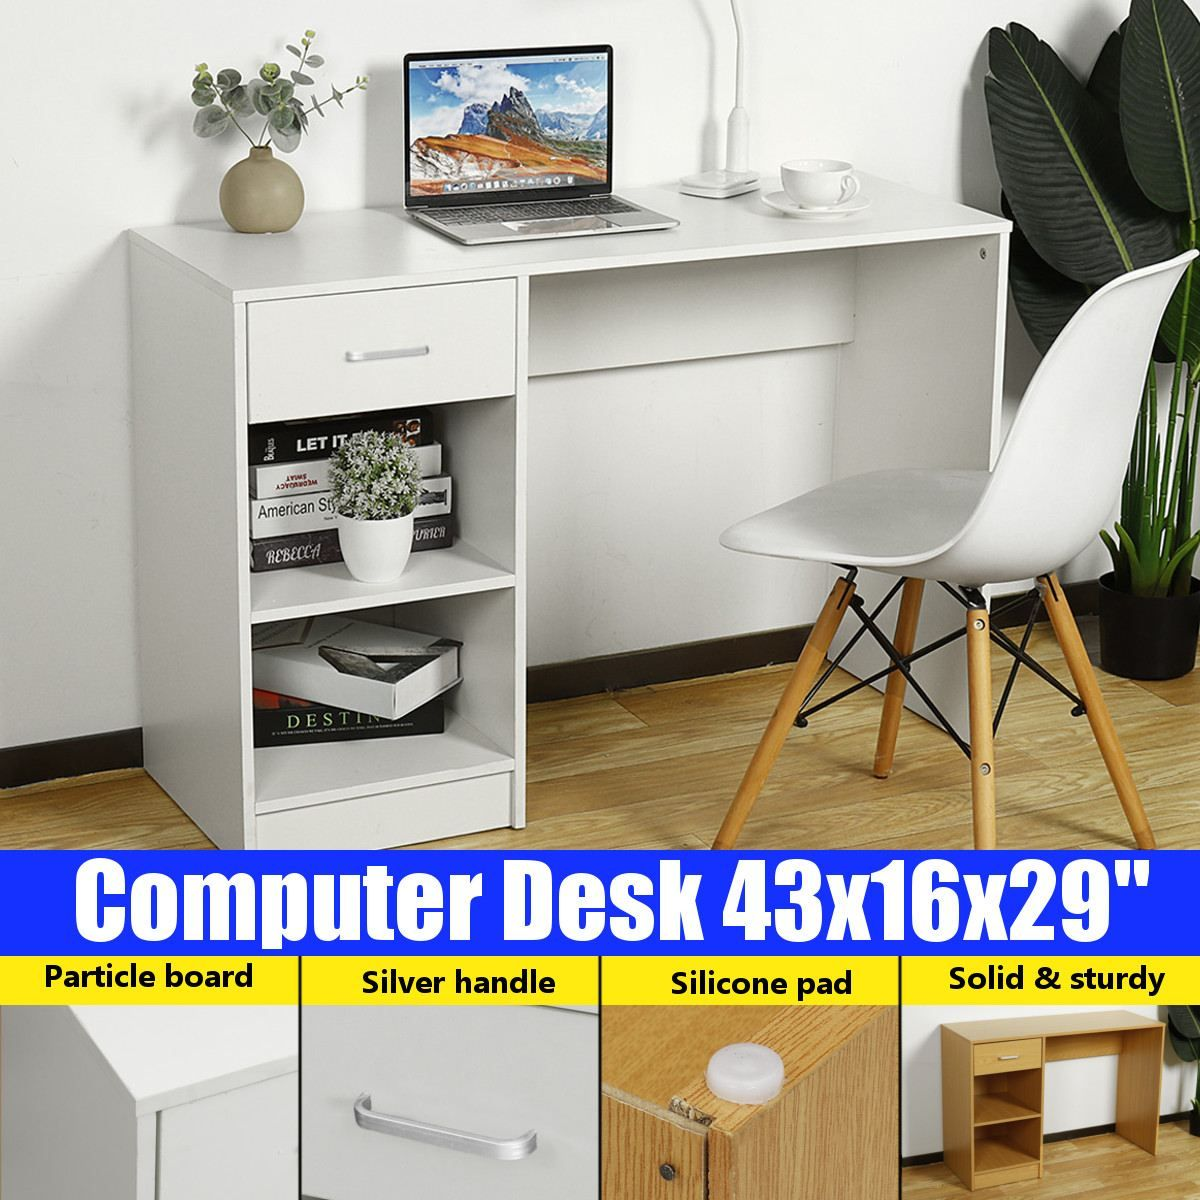 43 Computer Desk Office Workstation Study Writing Pc Laptop Table Dining Gaming Table 1 Drawer 2 Layer Shelves Home Furniture Wallcorners Decor Your Home L In 2021 Desk Furniture Computer Desk Office Computer Desk